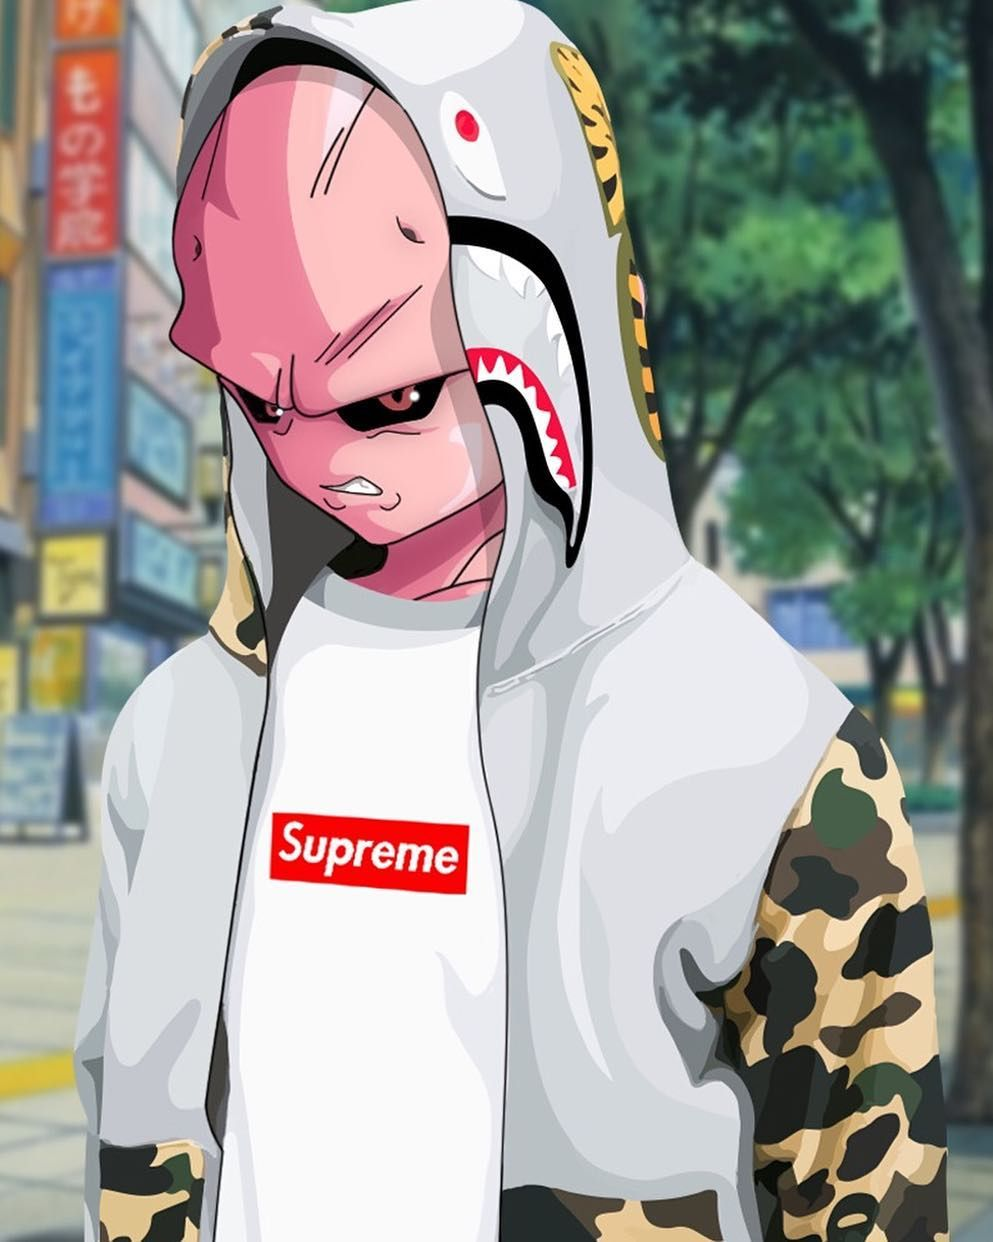 Naruto Supreme: #hypeAF: The Original And Purest Form Of The Majin Called